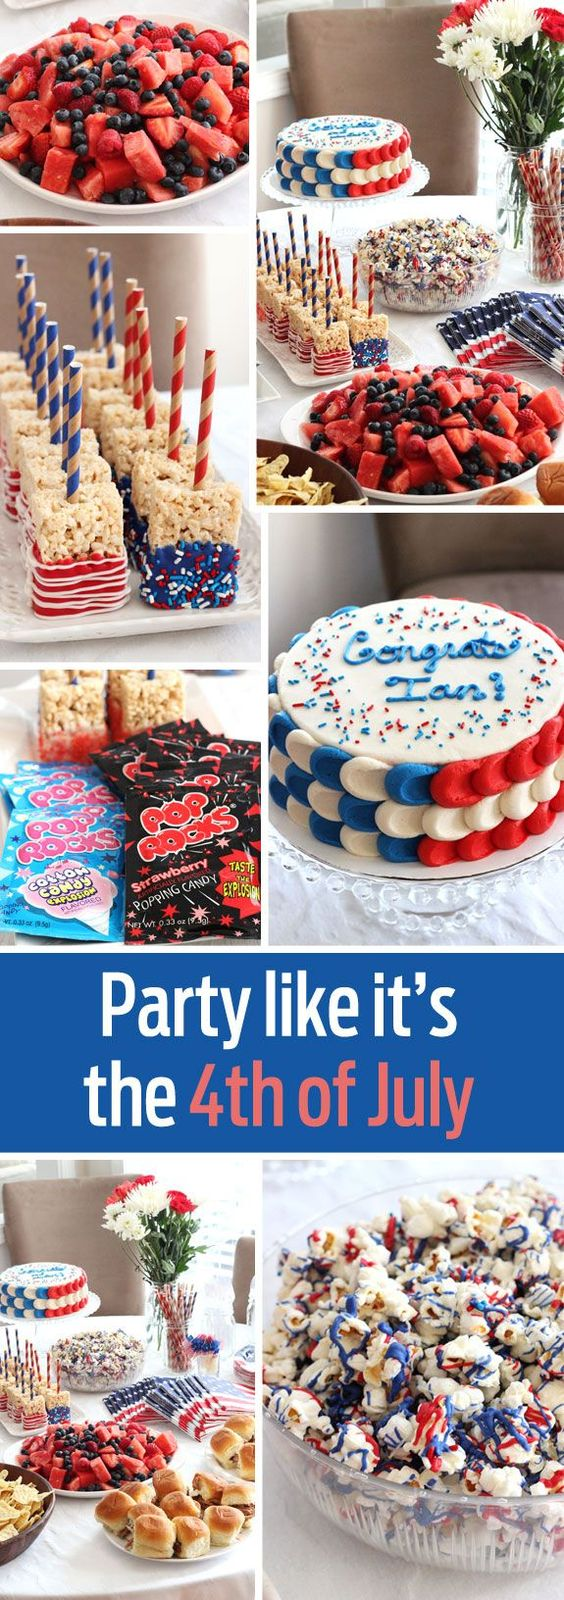 Throw a great party for the 4th of July or Memorial Day with these themed ideas for food and treats!: